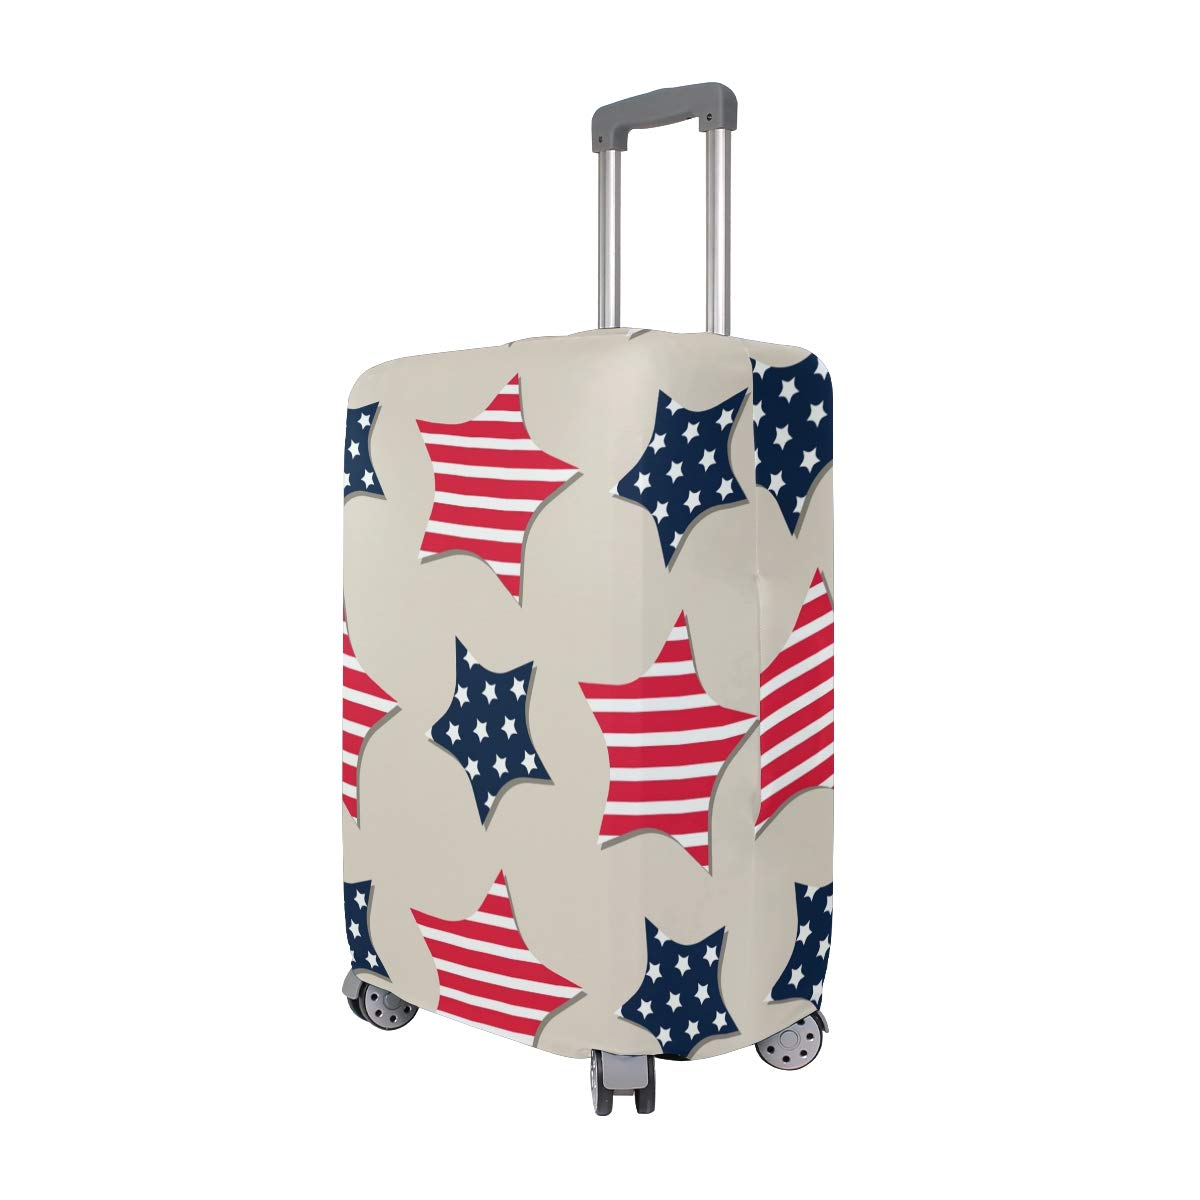 Baggage Covers Star Pattern Red Navy Color Stripes Washable Protective Case